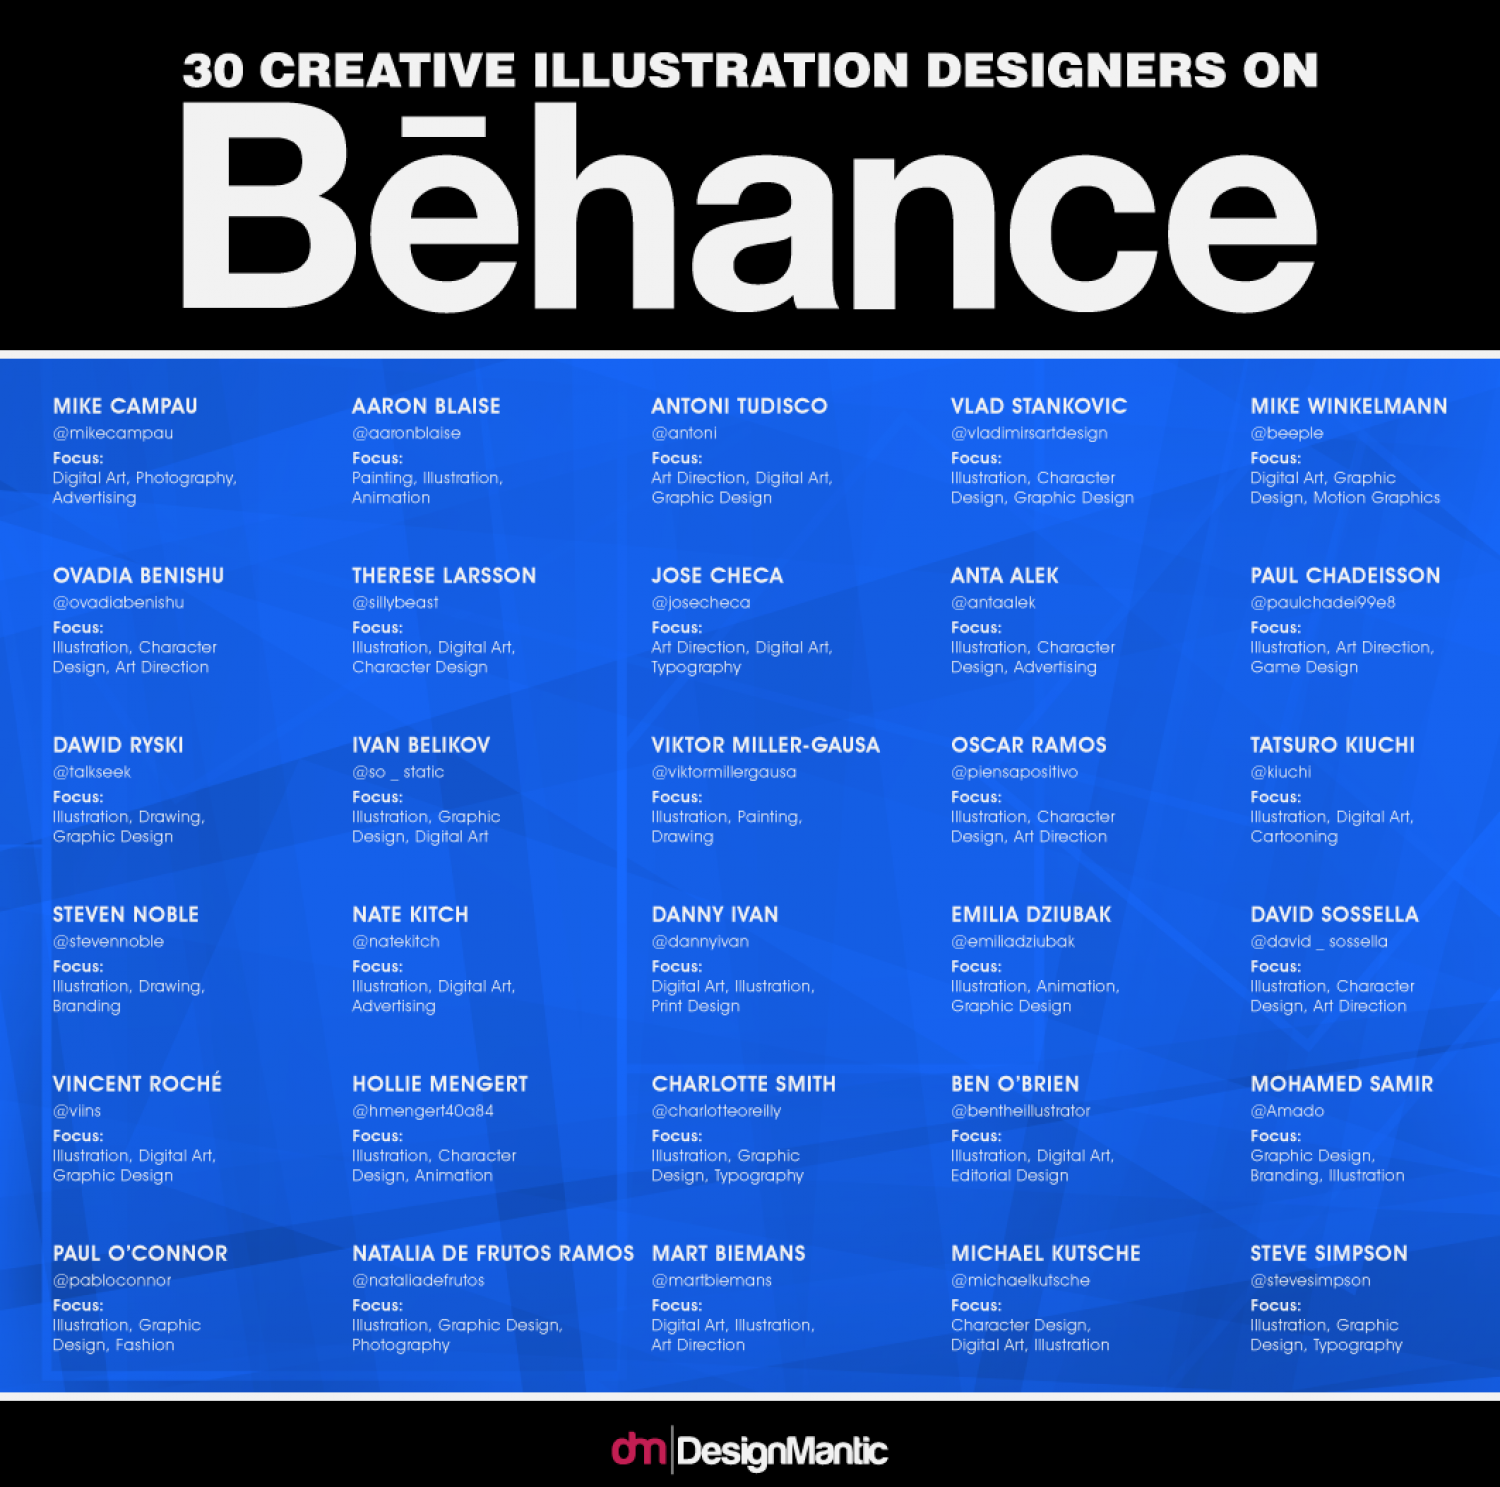 30 Creative Illustration Designers on Behance Infographic